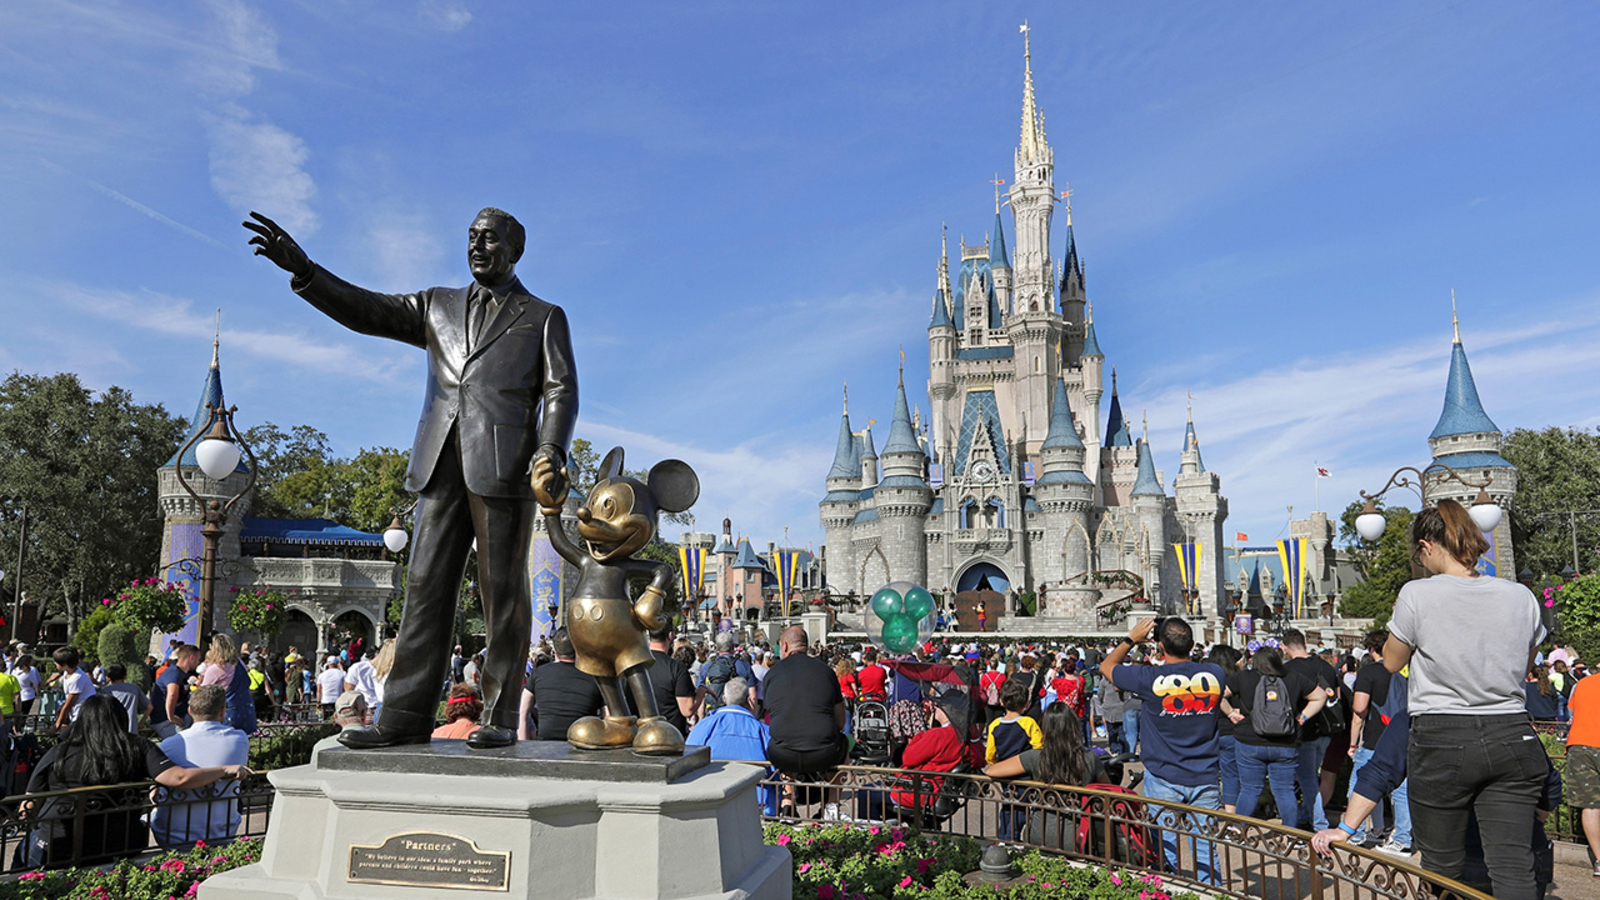 Disney to lay off 28,000 at its parks in California, Florida - 6abc  Philadelphia